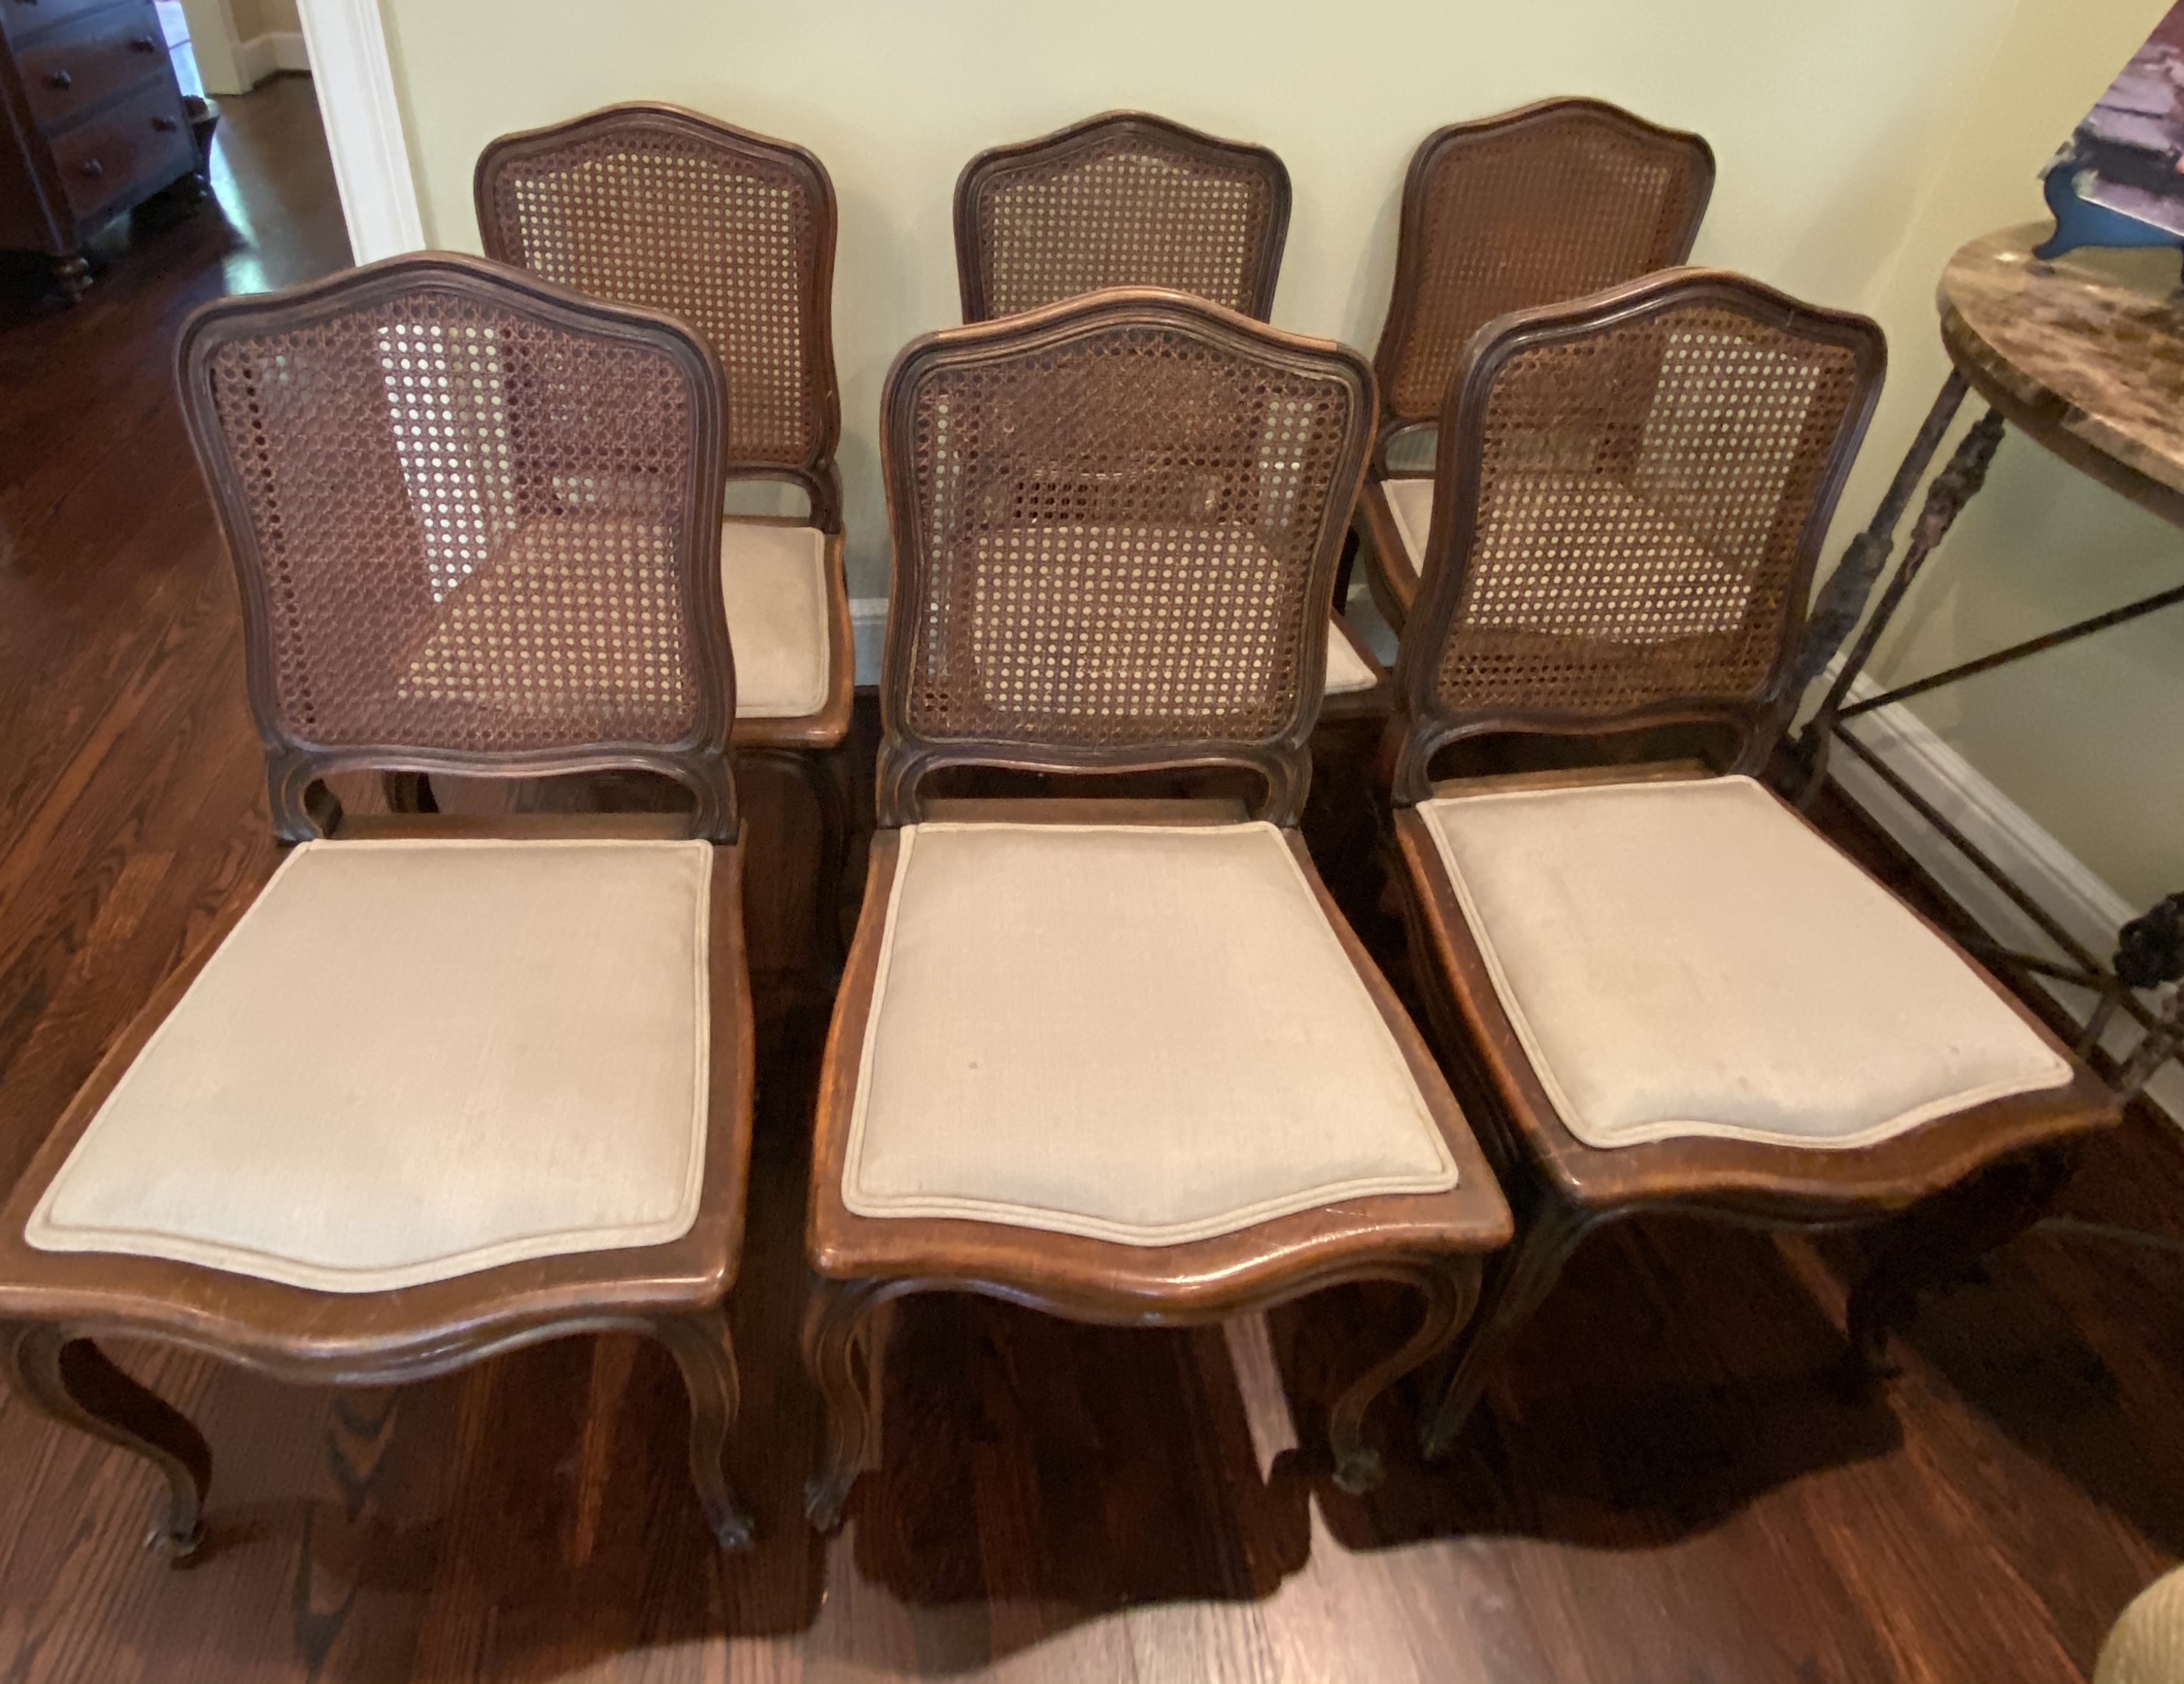 SOLD: 6 cane dining chairs